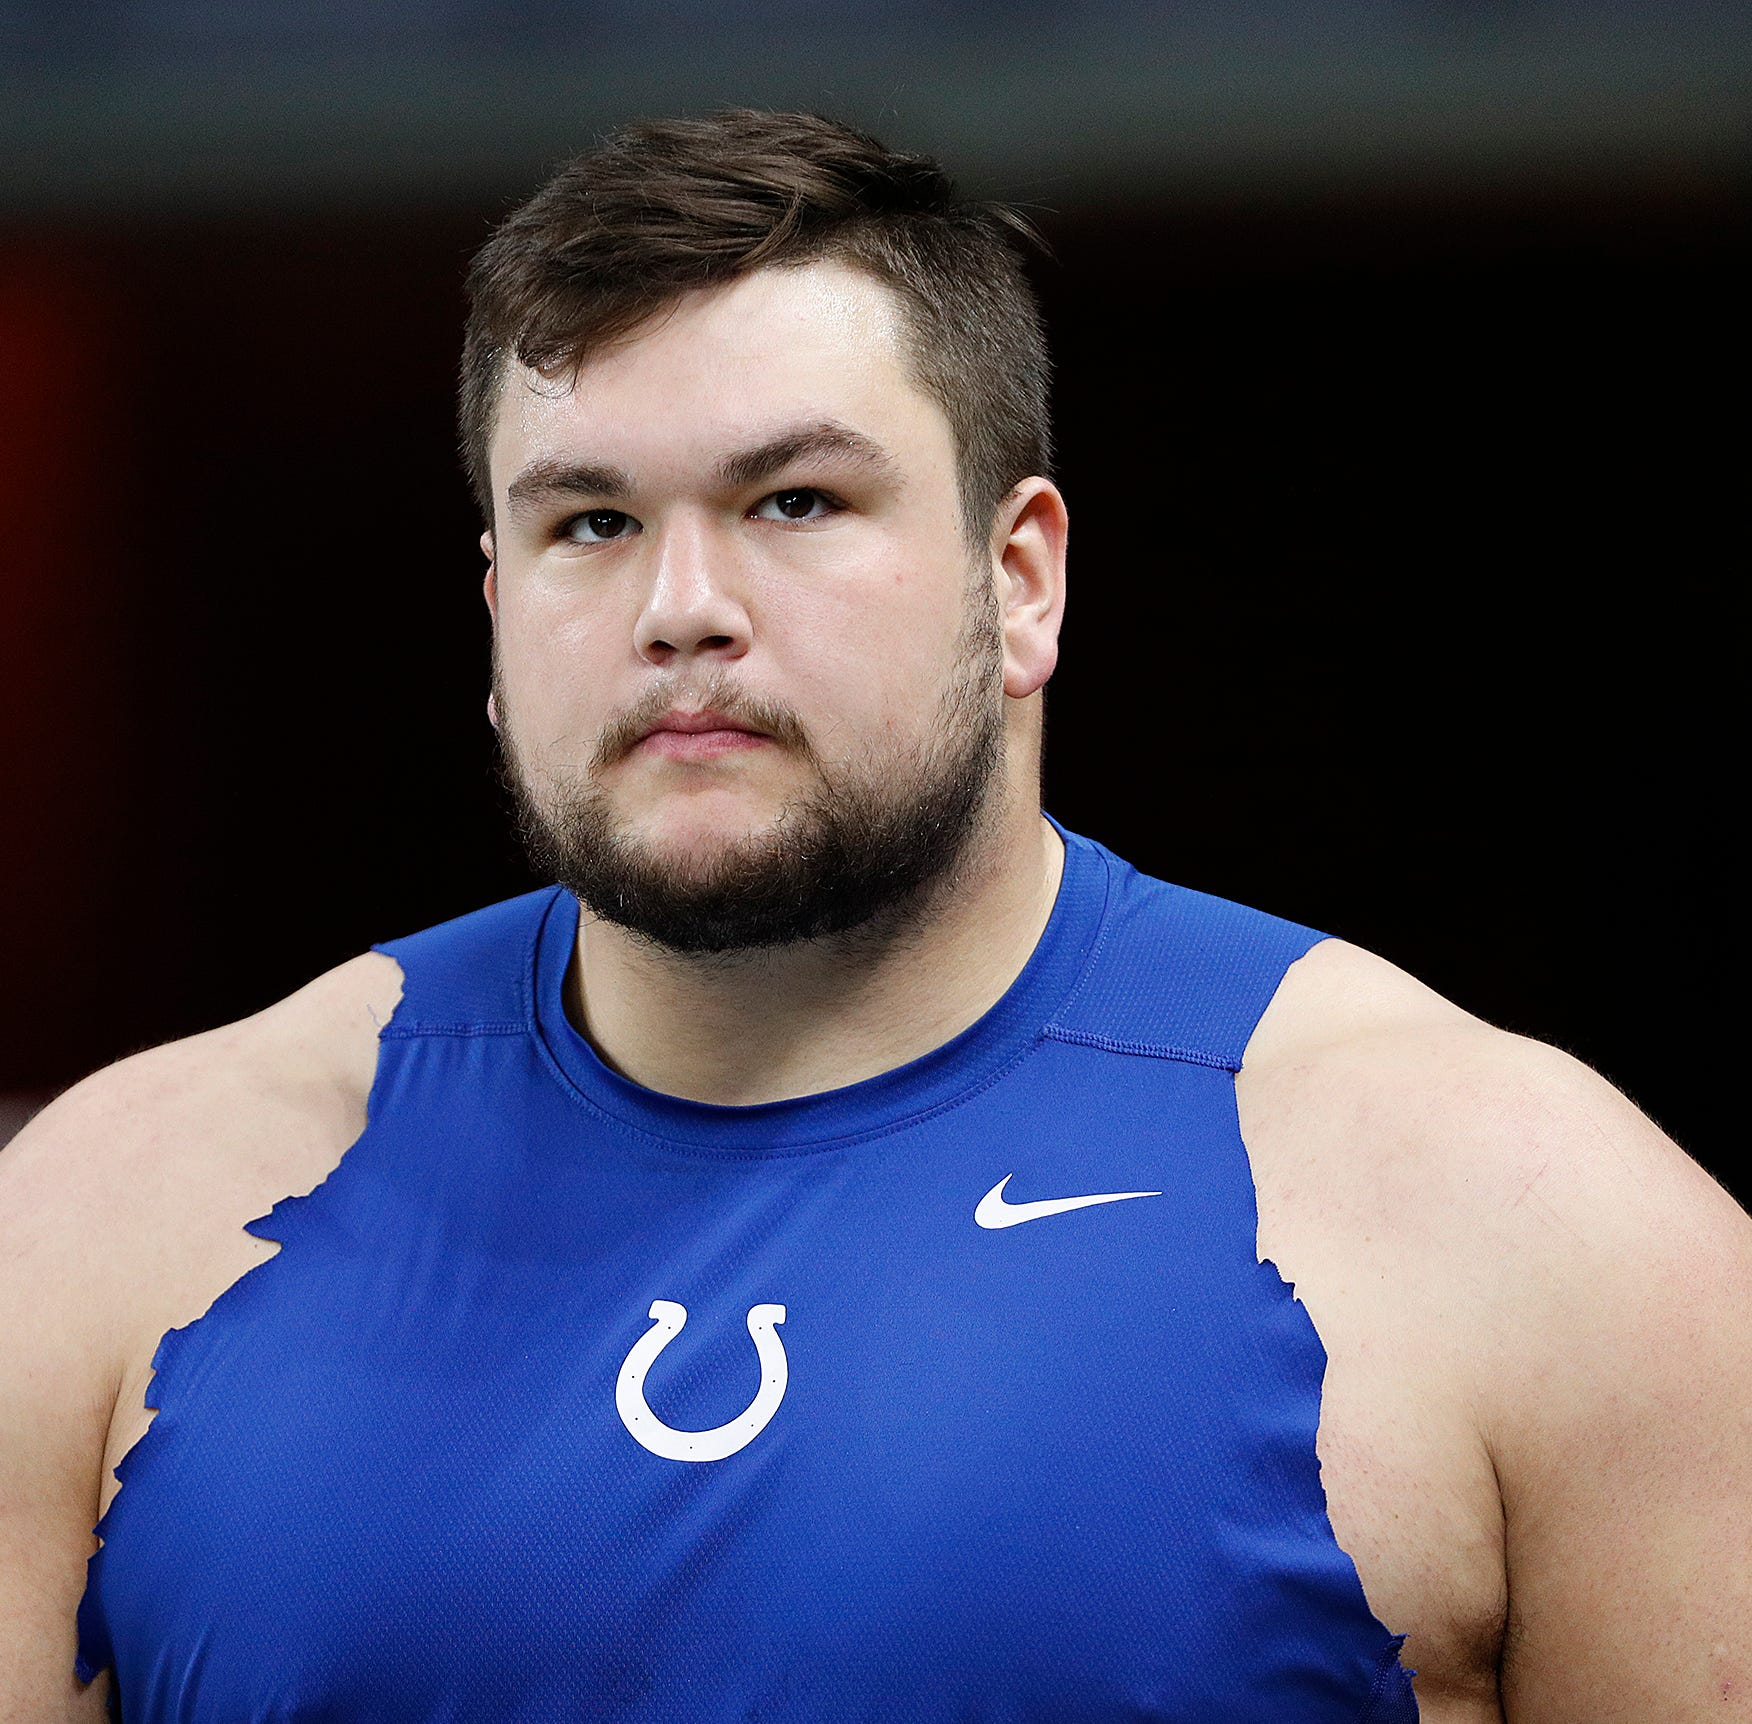 Colts rookie Quenton Nelson, center Ryan Kelly defend fired coach Dave DeGuglielmo